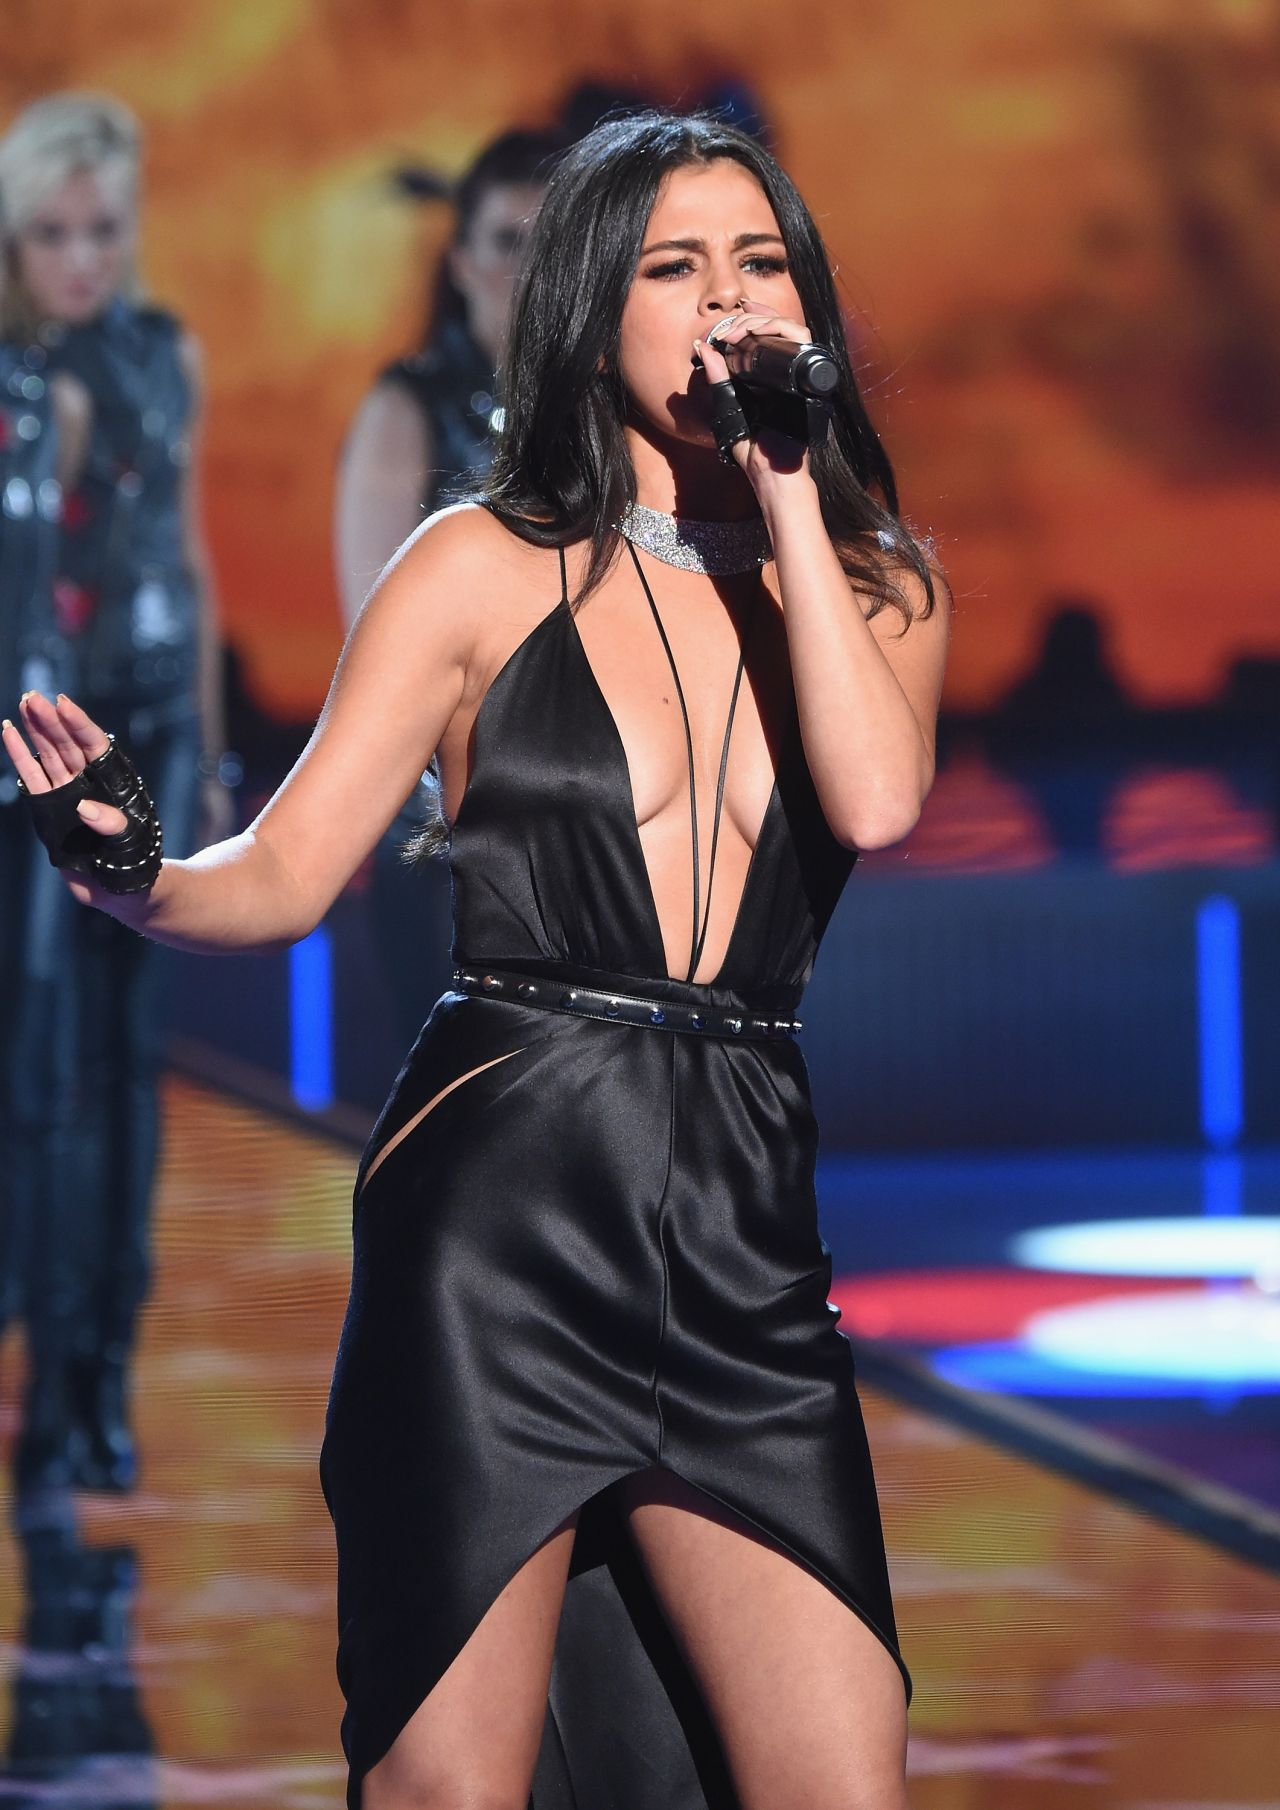 2015 S Most Popular Halloween Costumes By State Map: Performs At Victoria's Secret Fashion Show